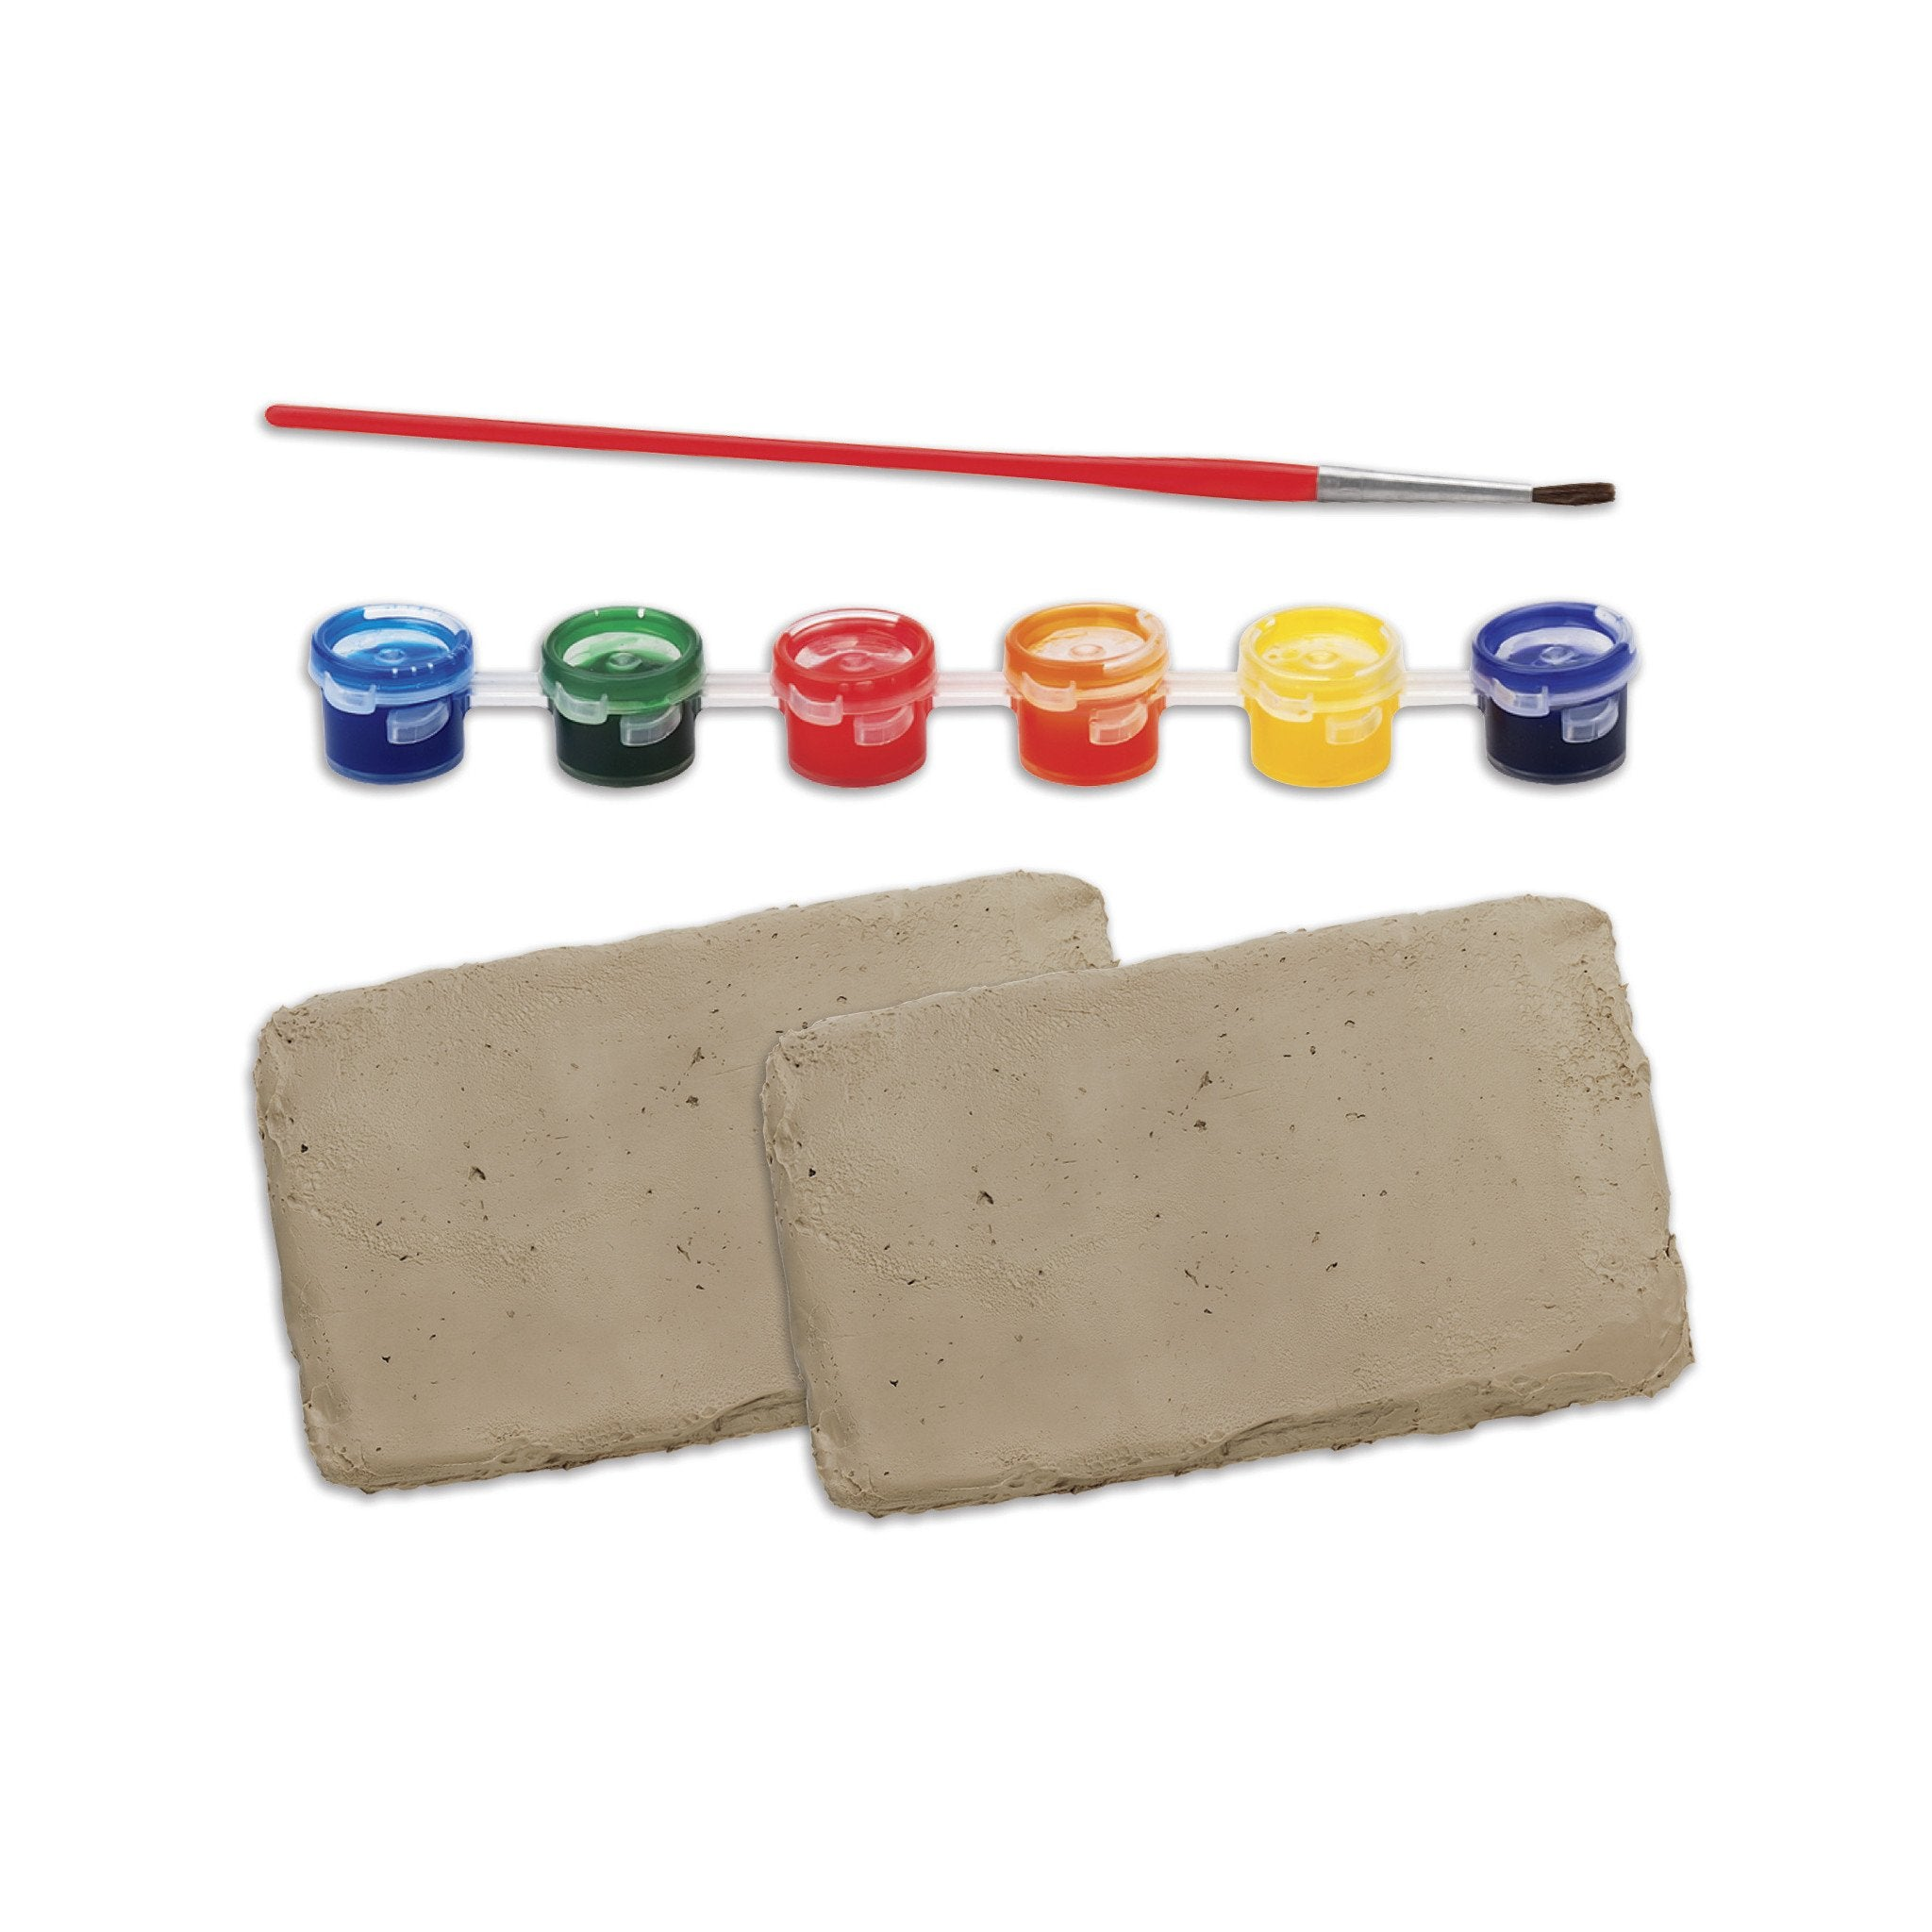 Pottery Studio Air Dry Clay Refill